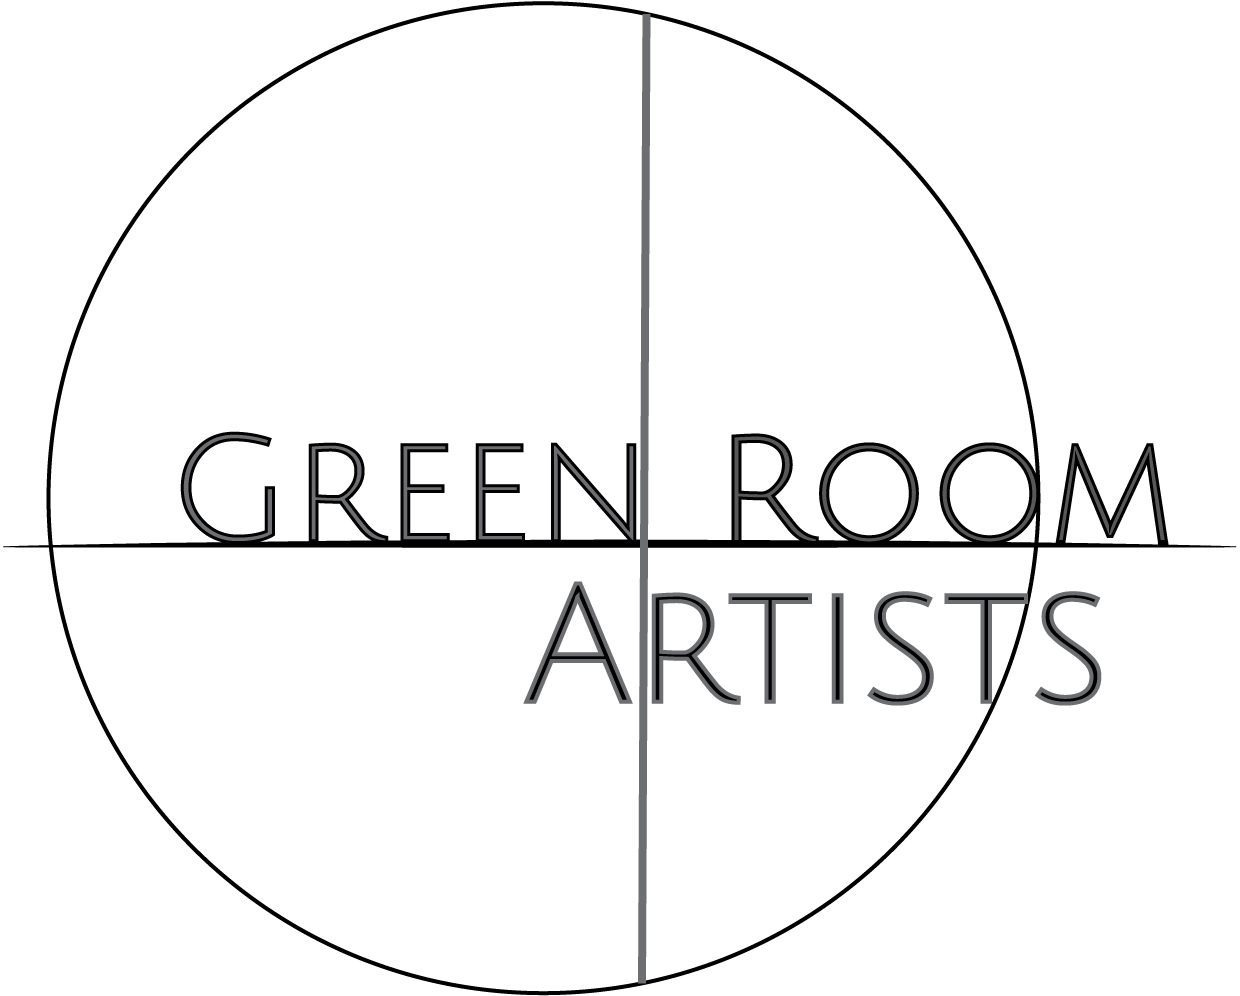 Green Room Artists